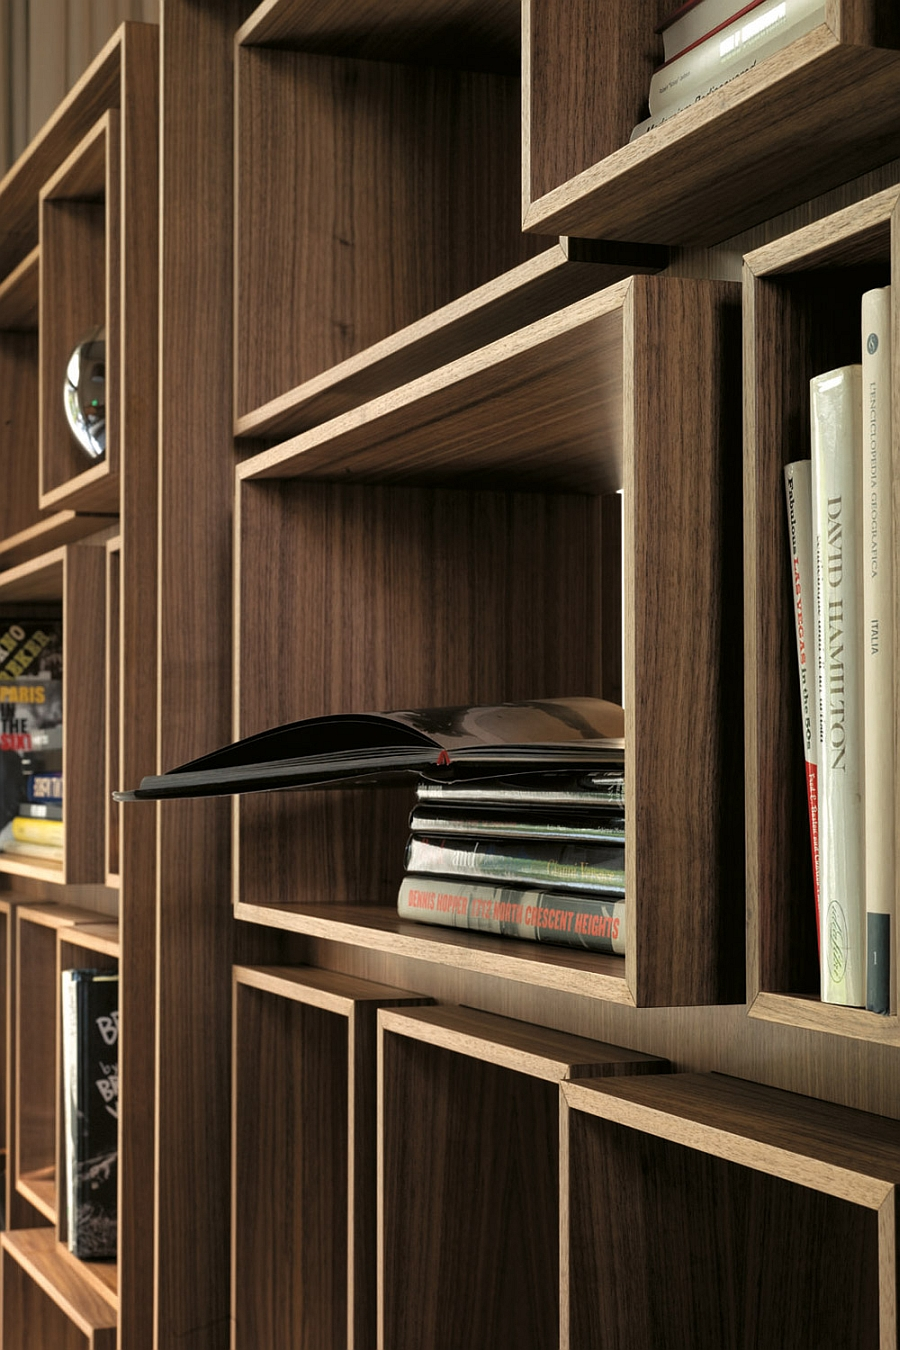 storage wall units living room paint ideas to brighten 5 trendy modern bookshelves that unleash warmth of wood!